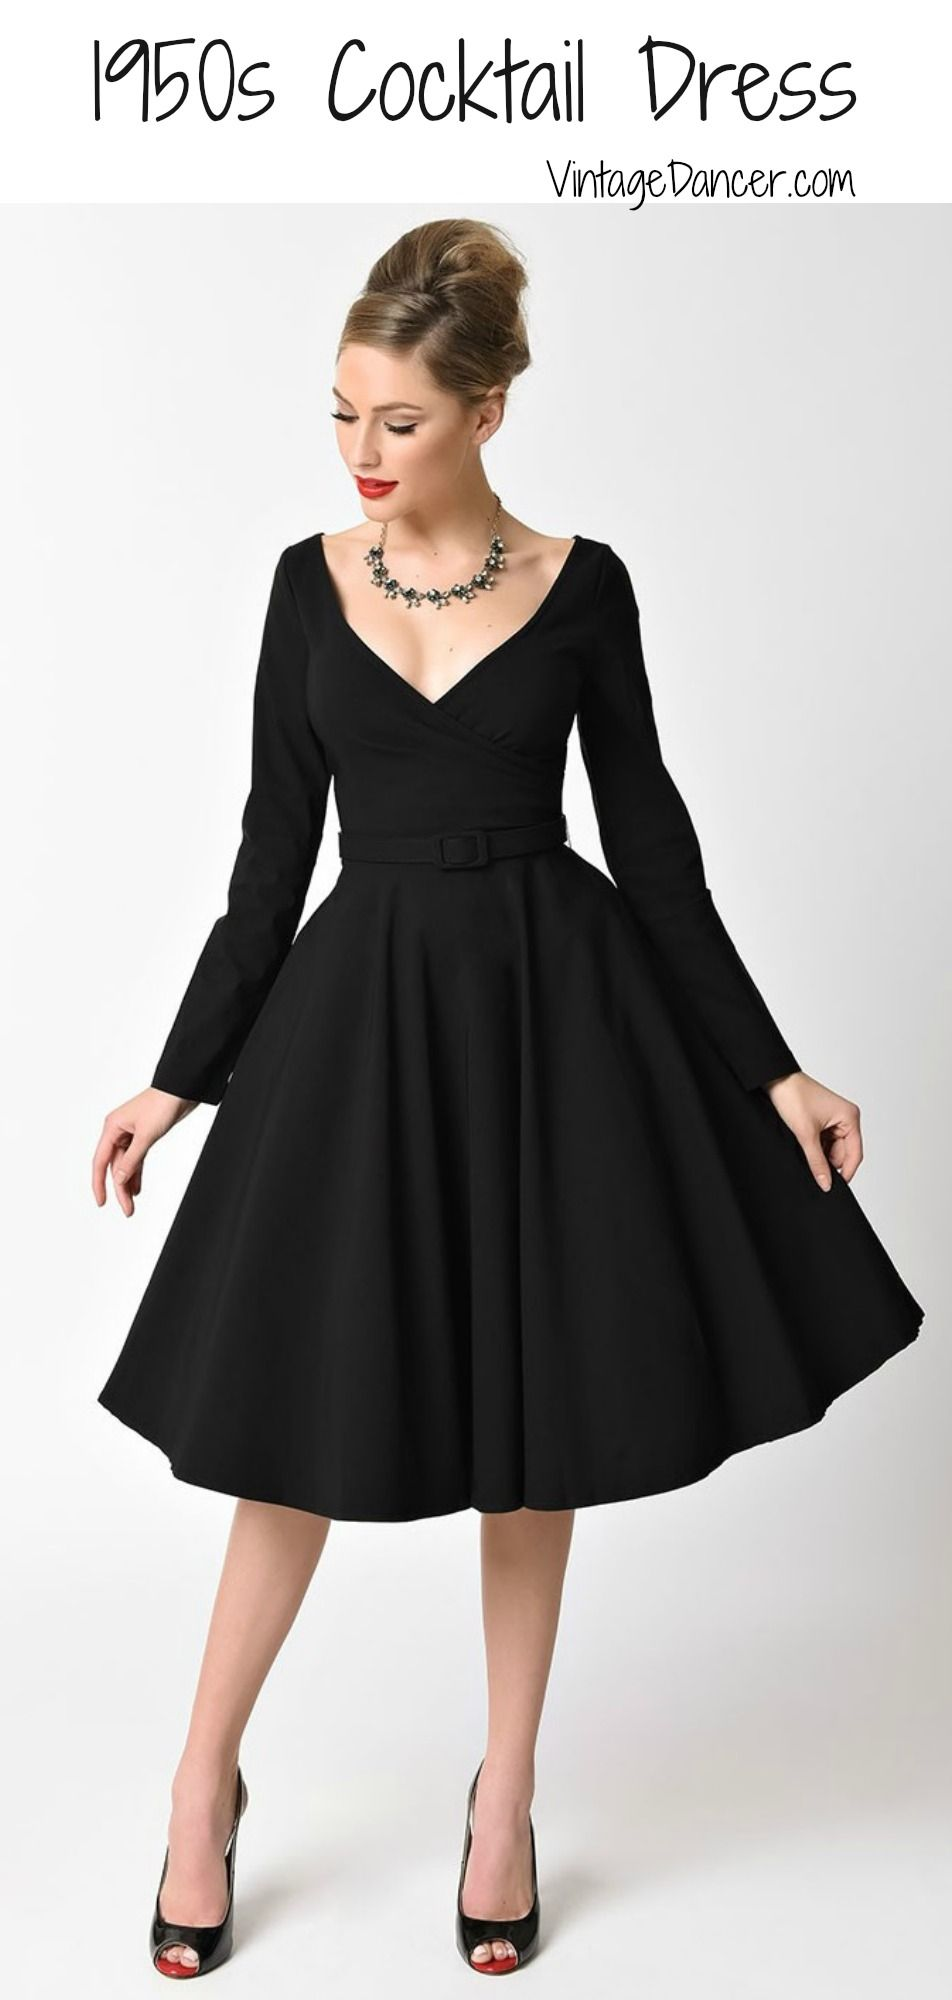 Black 1950s cocktail dresses and party dresses at VintageDancer.com 406c63d12b7c